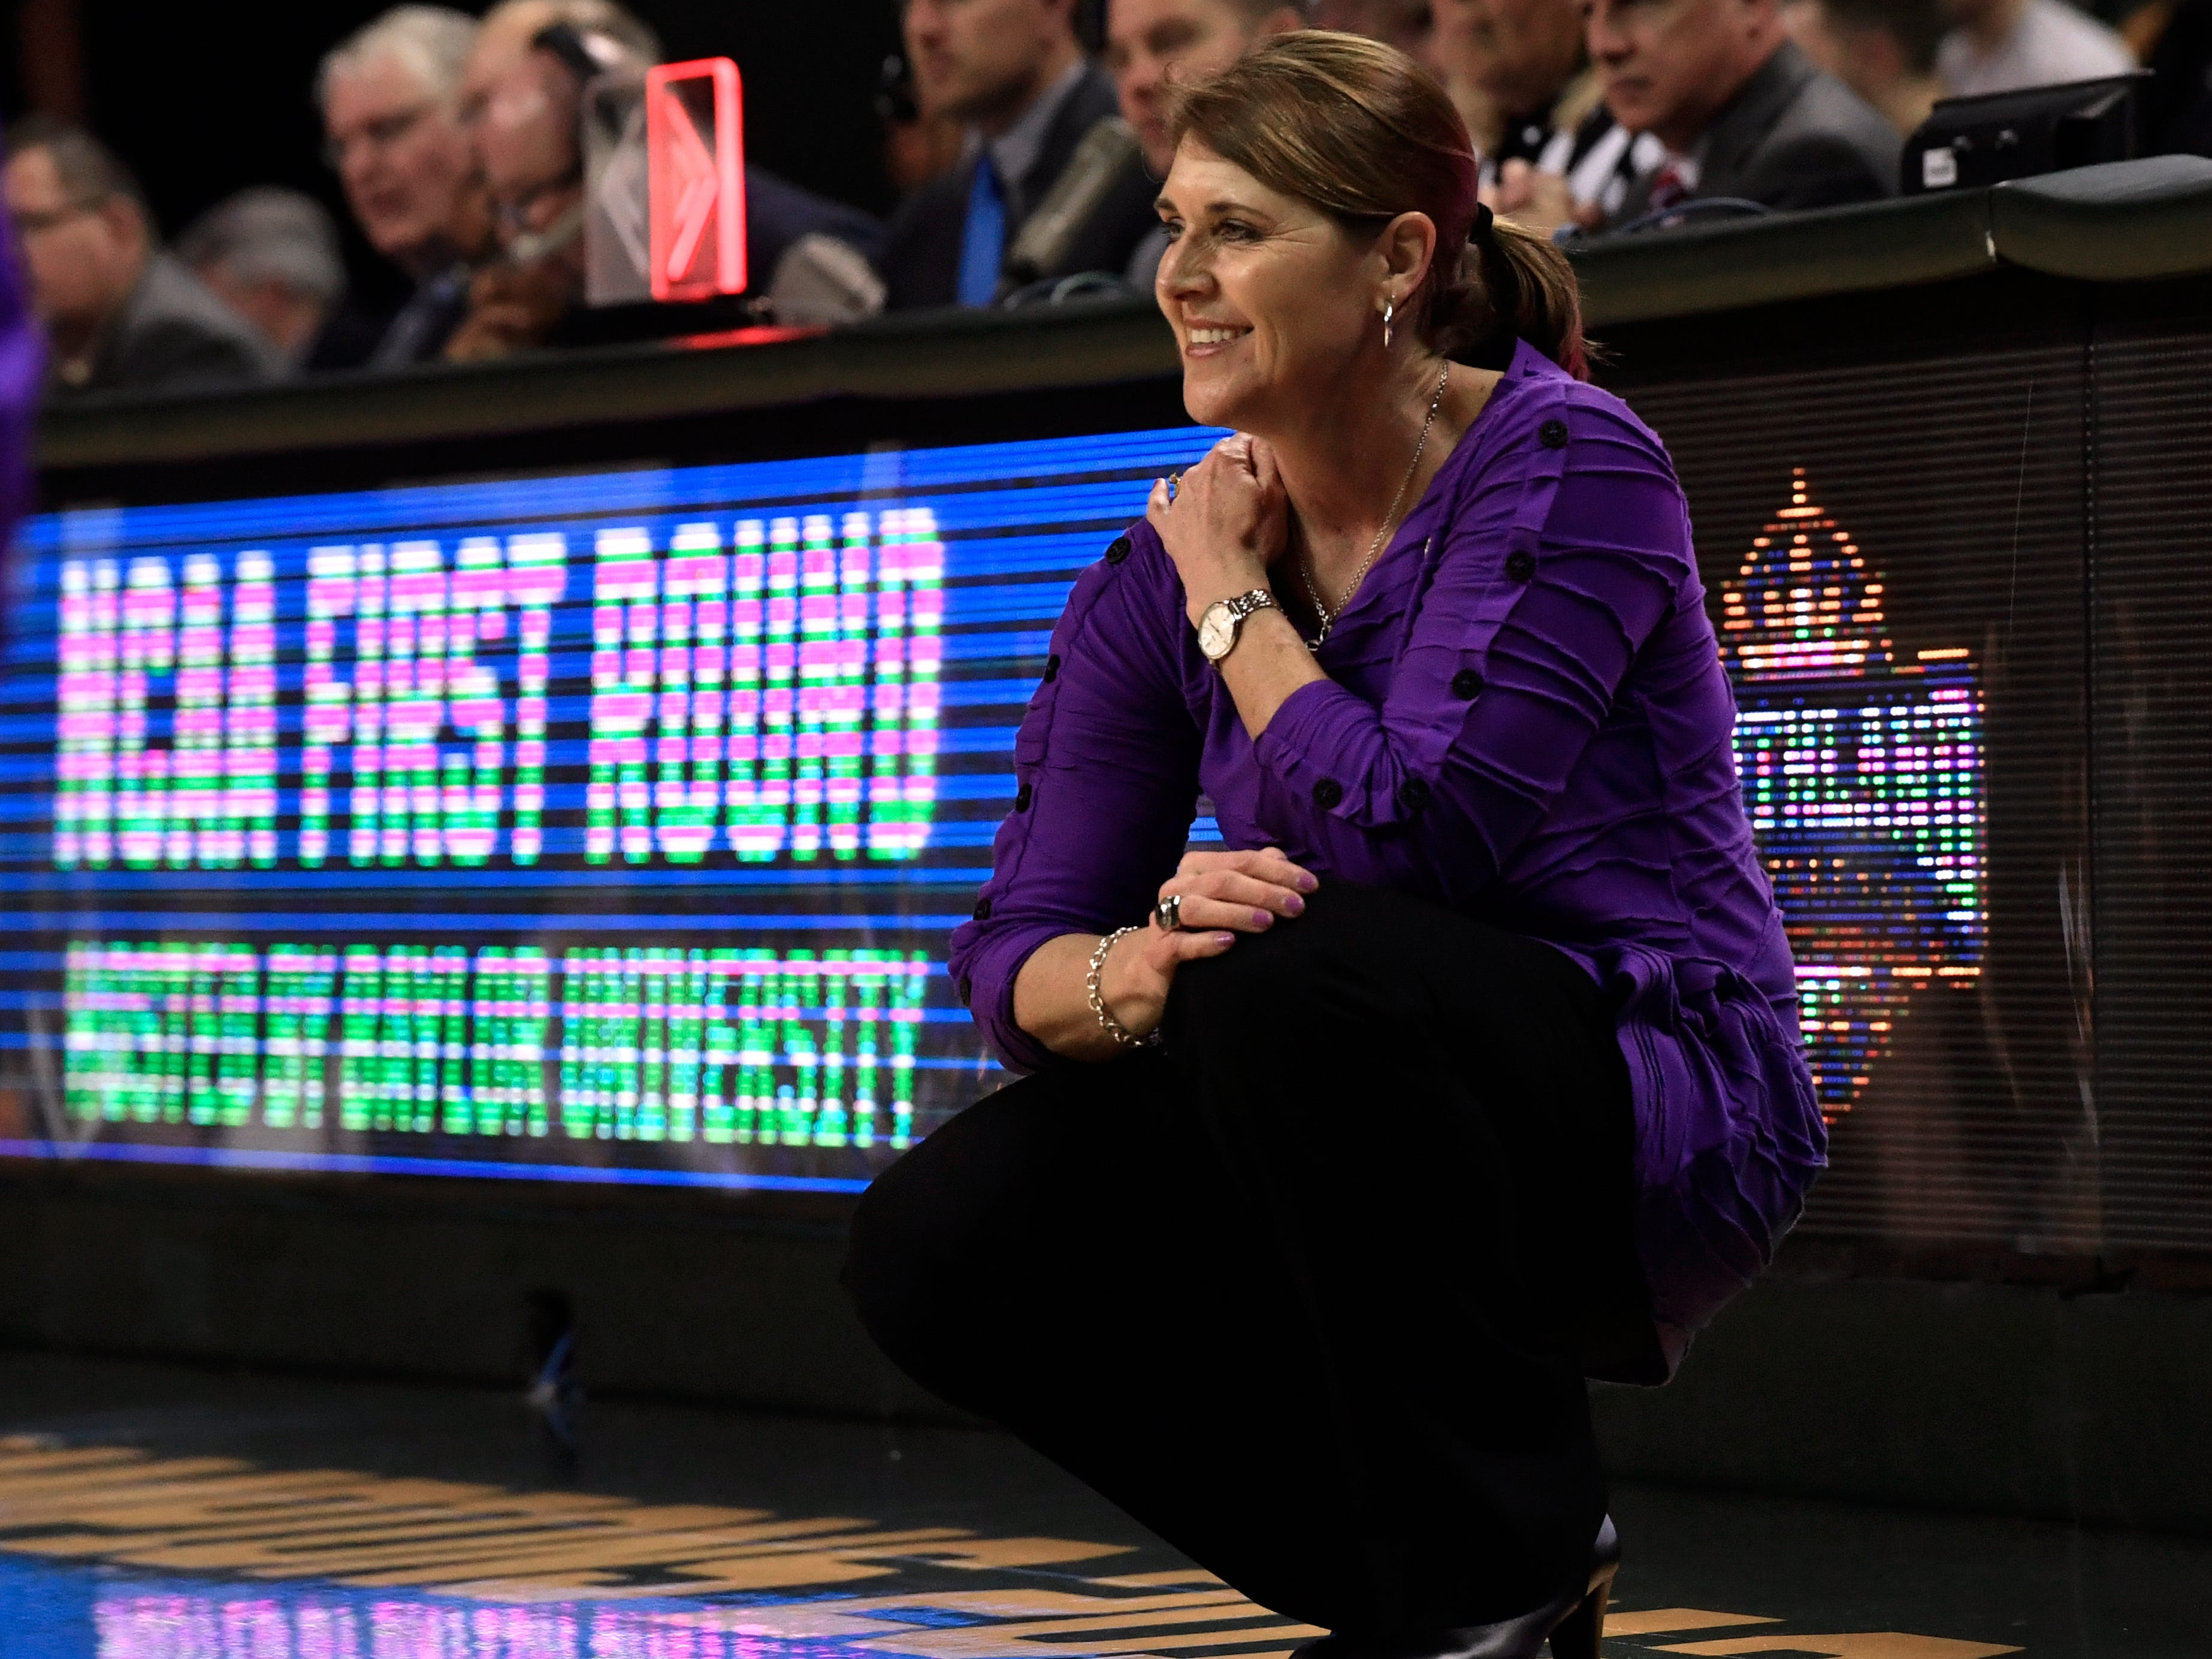 ACU head women's basketball coach Julie Goodenough watches her team play against Baylor during Saturday's NCAA Tournament women's round 1 basketball game March 23, 2019. Baylor defeated Abilene Christian University, 95-38.